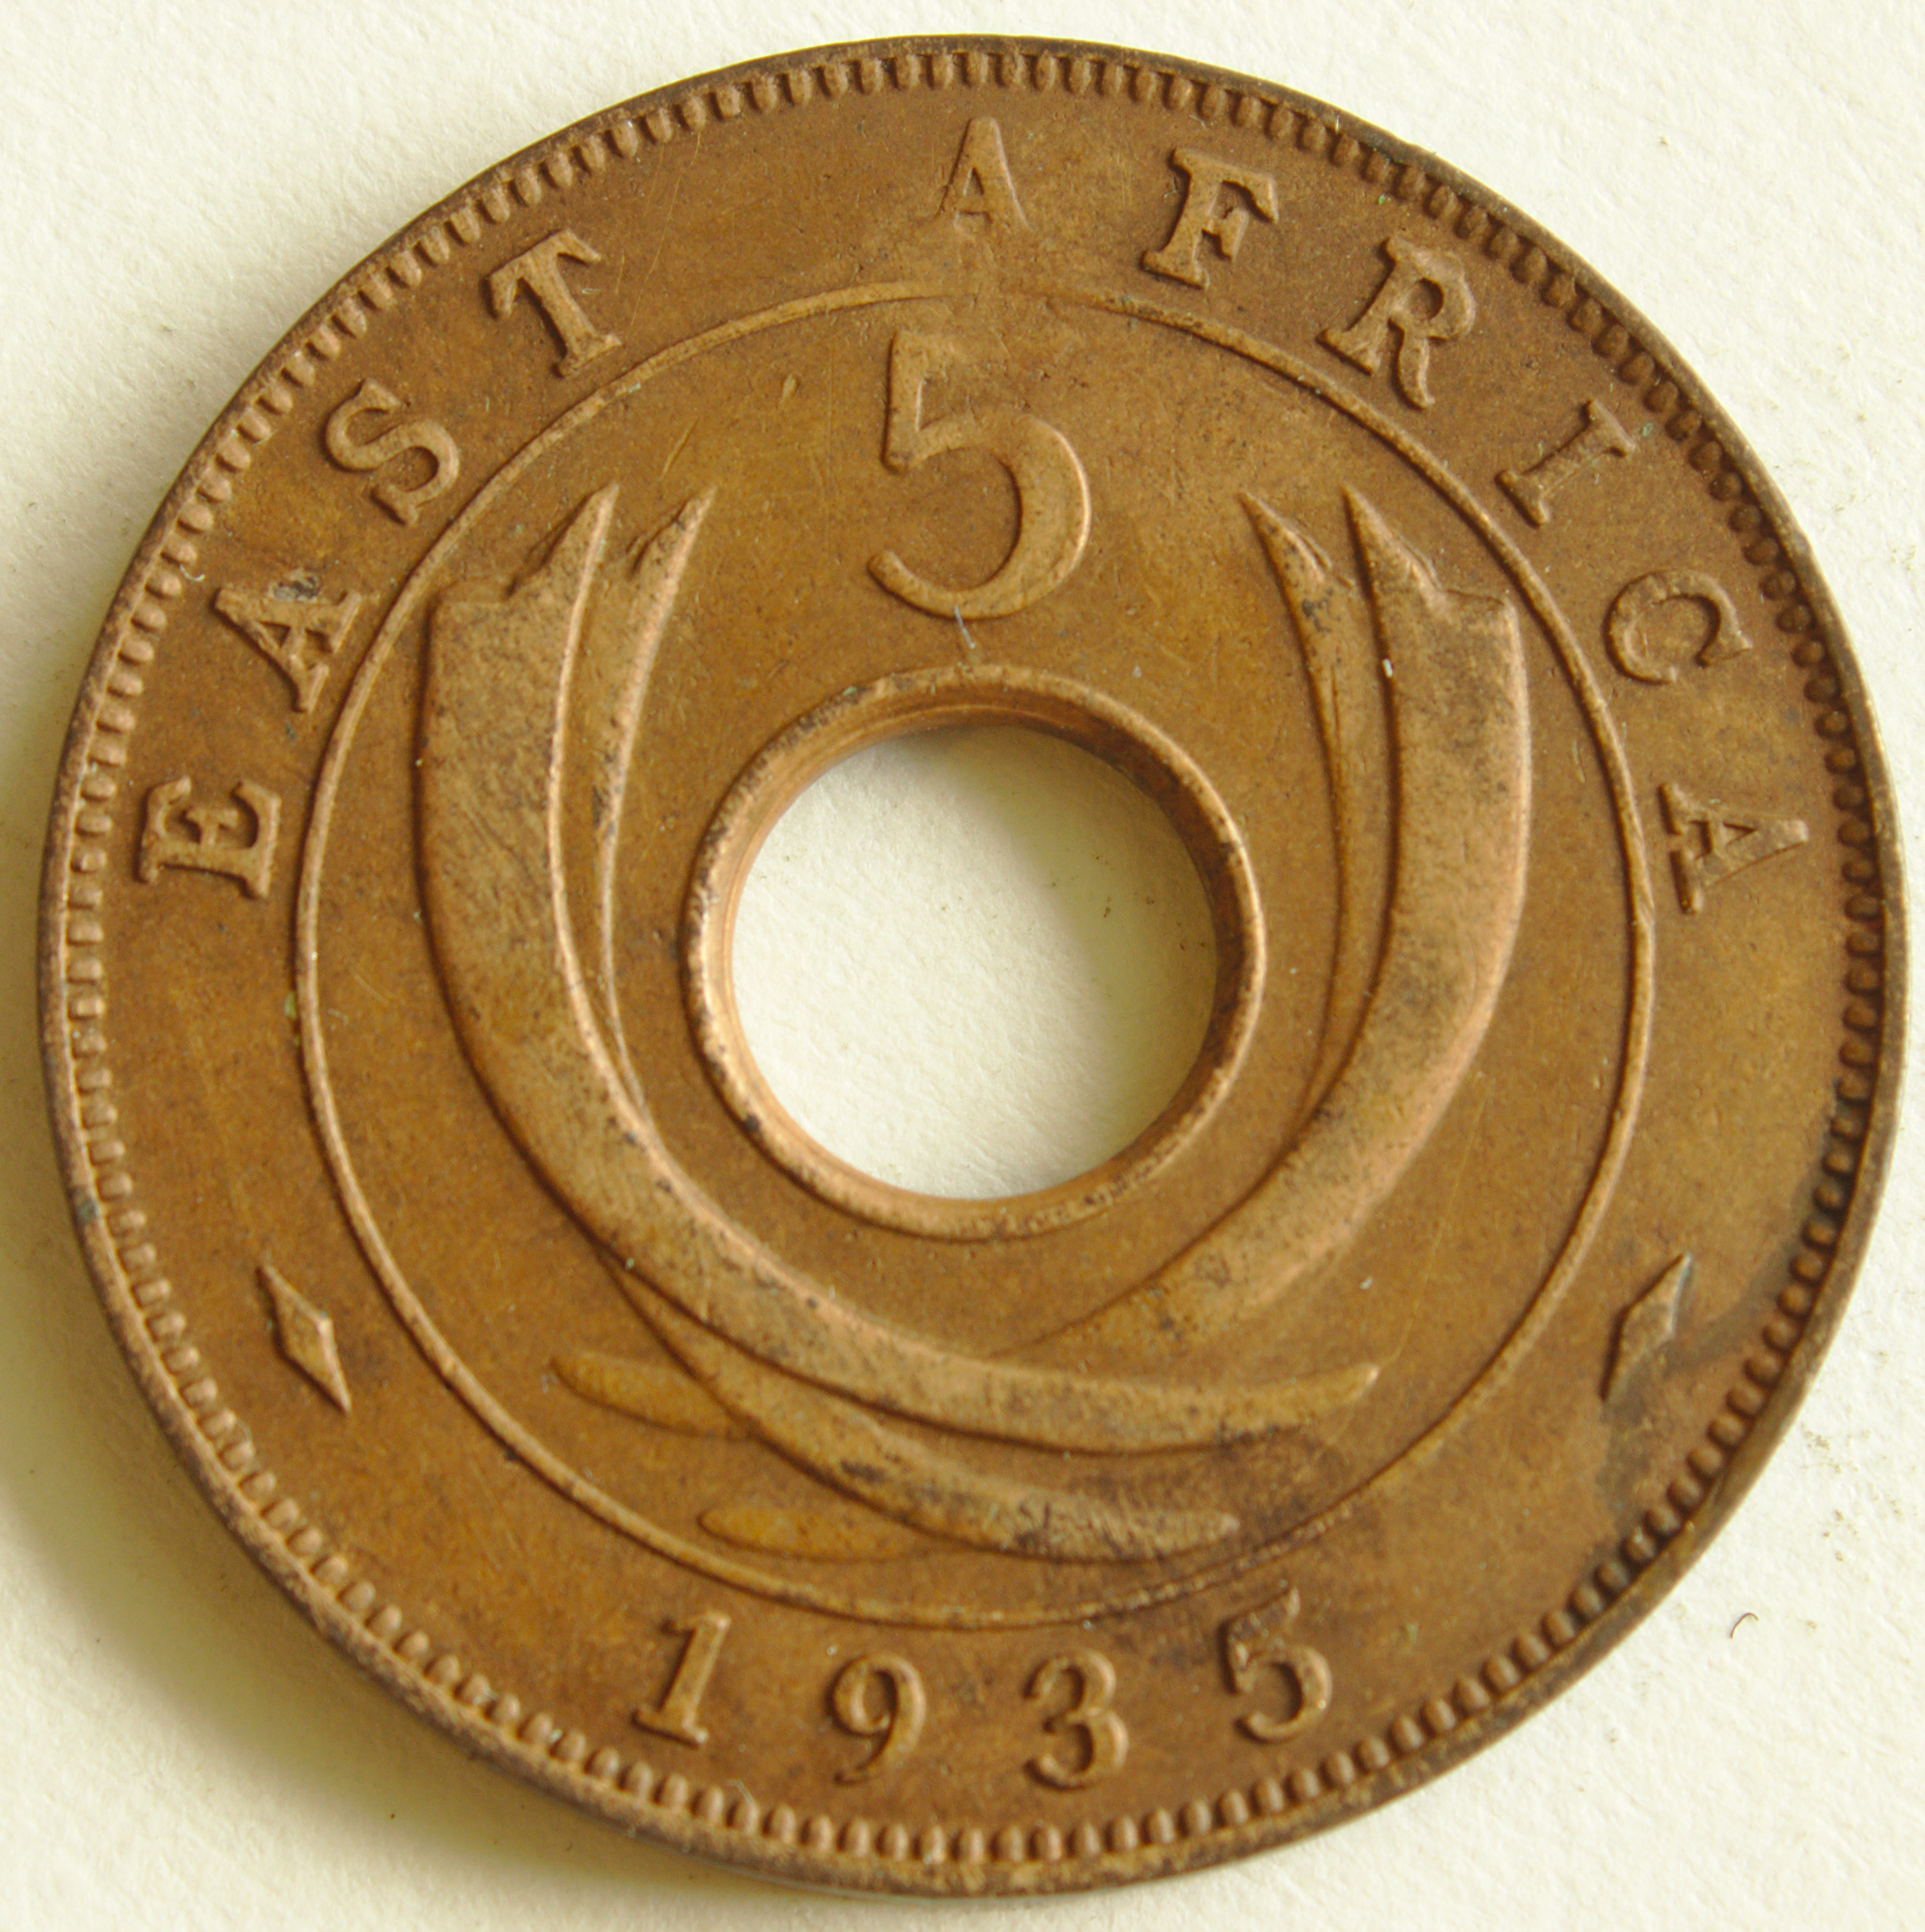 East African shilling - Wikiwand